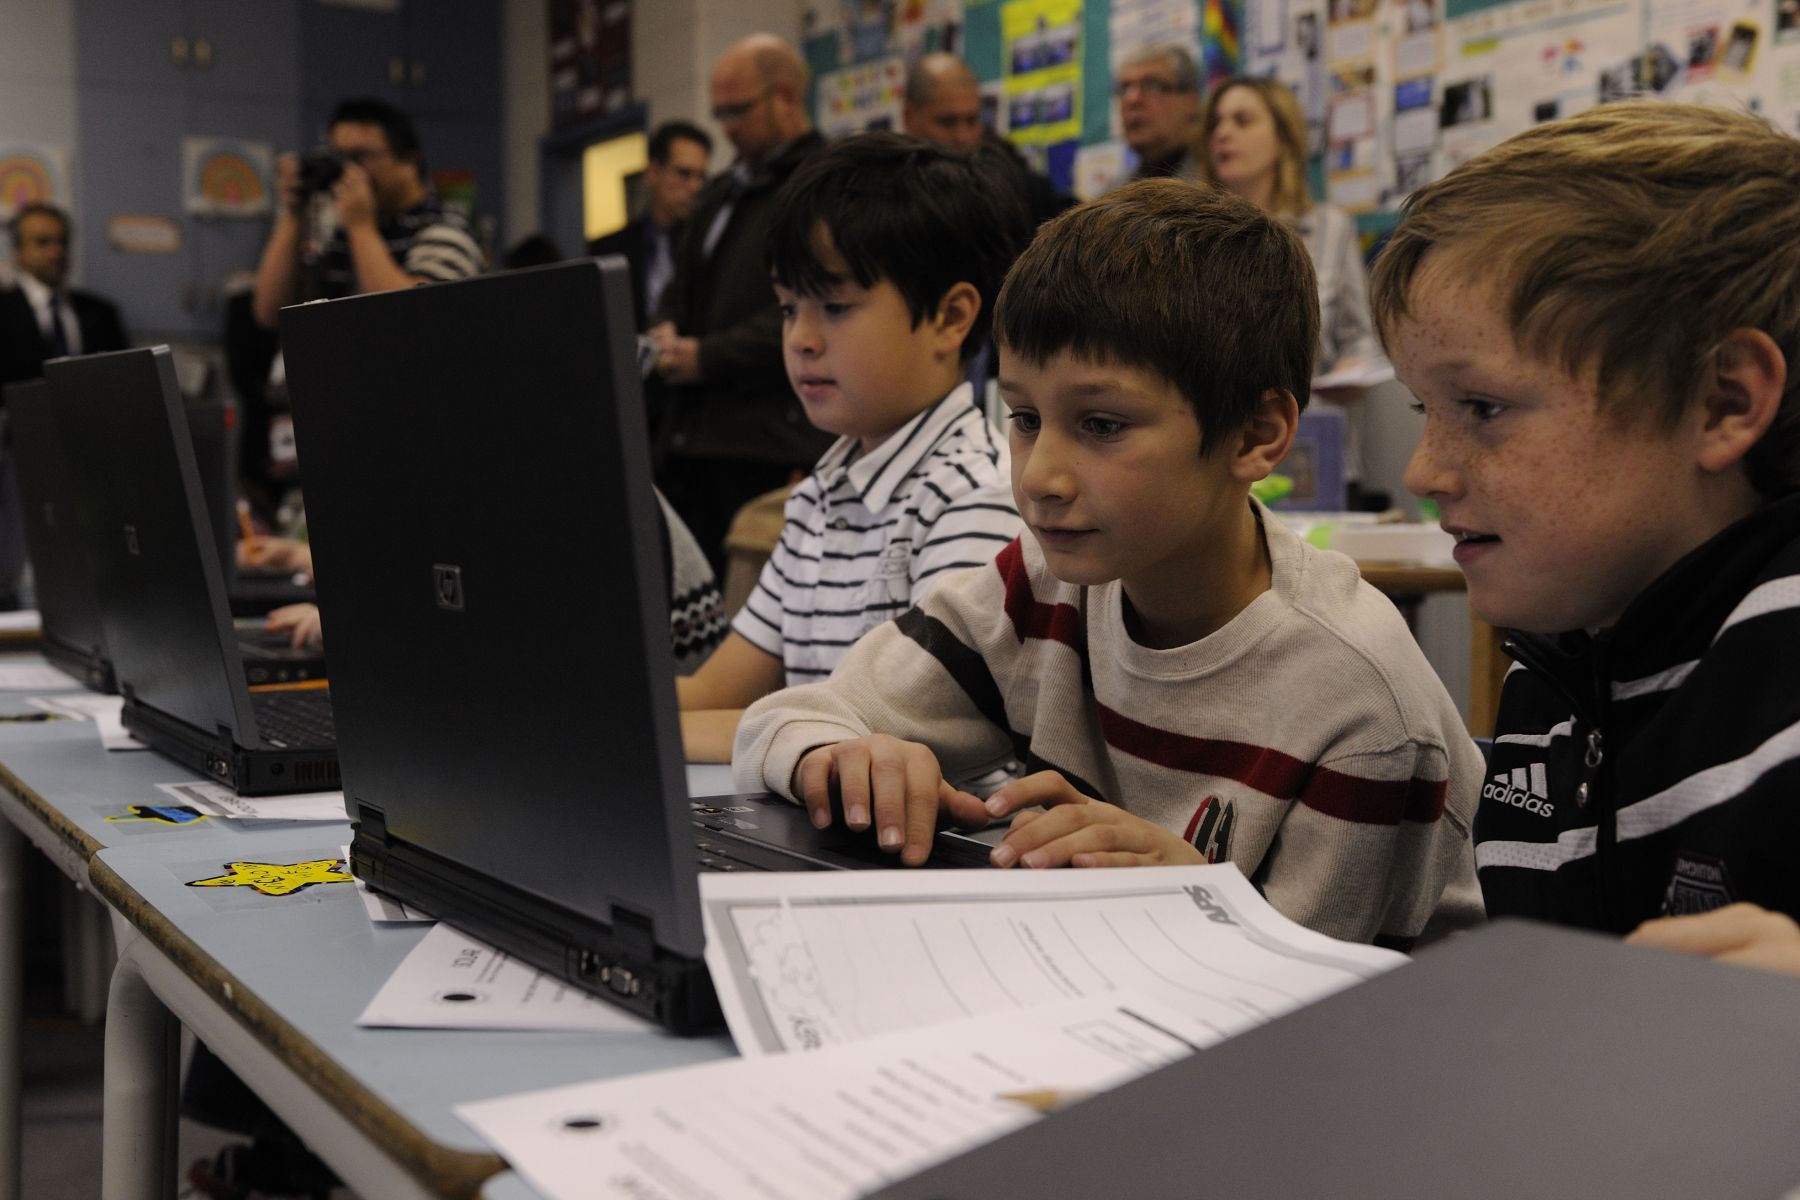 Students also use computers to improve their learning methods.